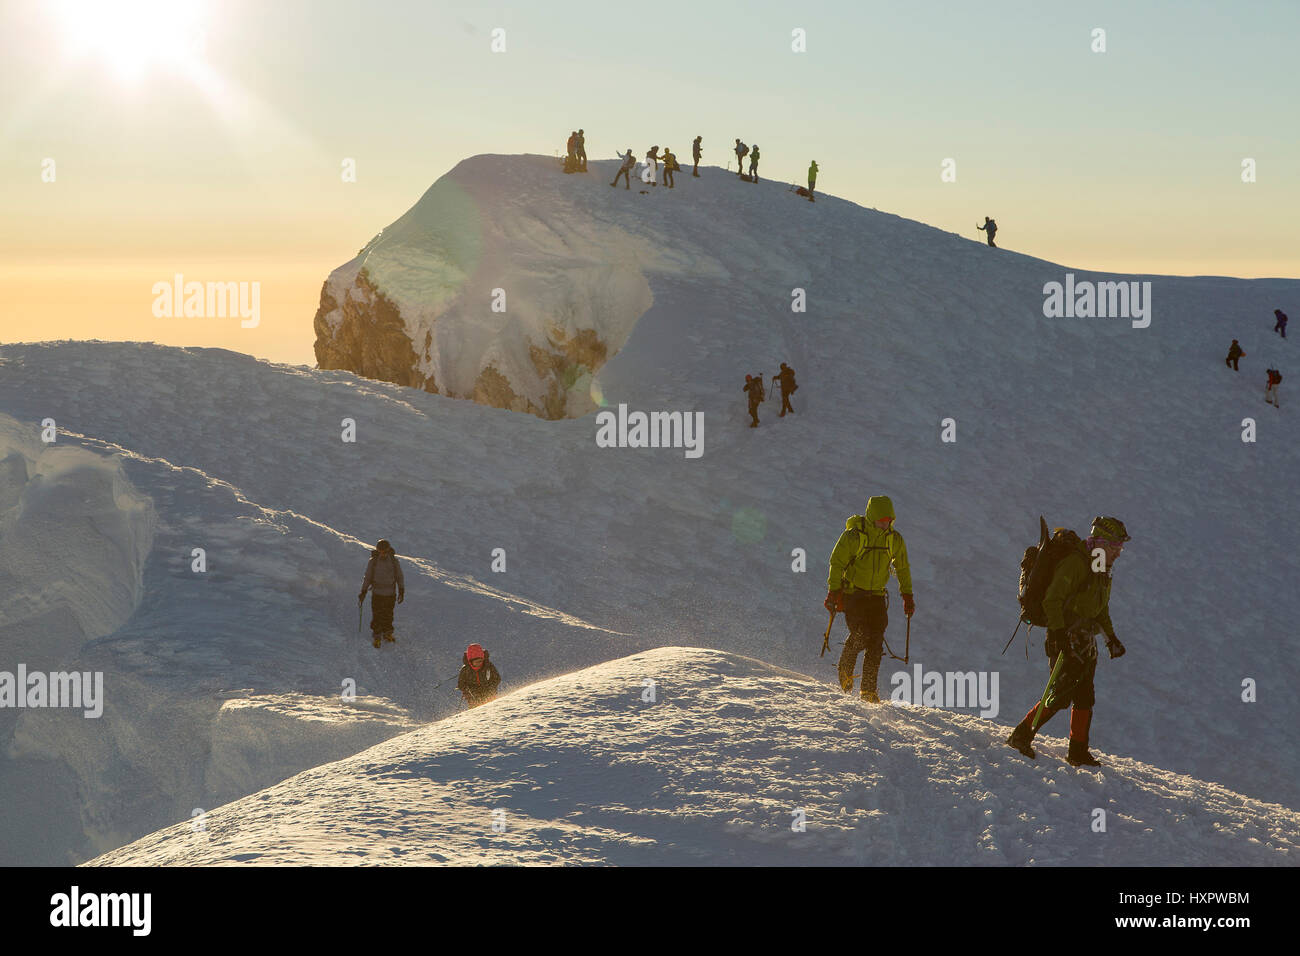 A group of mountaineers on the summit of Mount Hood, Oregon, United States. Stock Photo